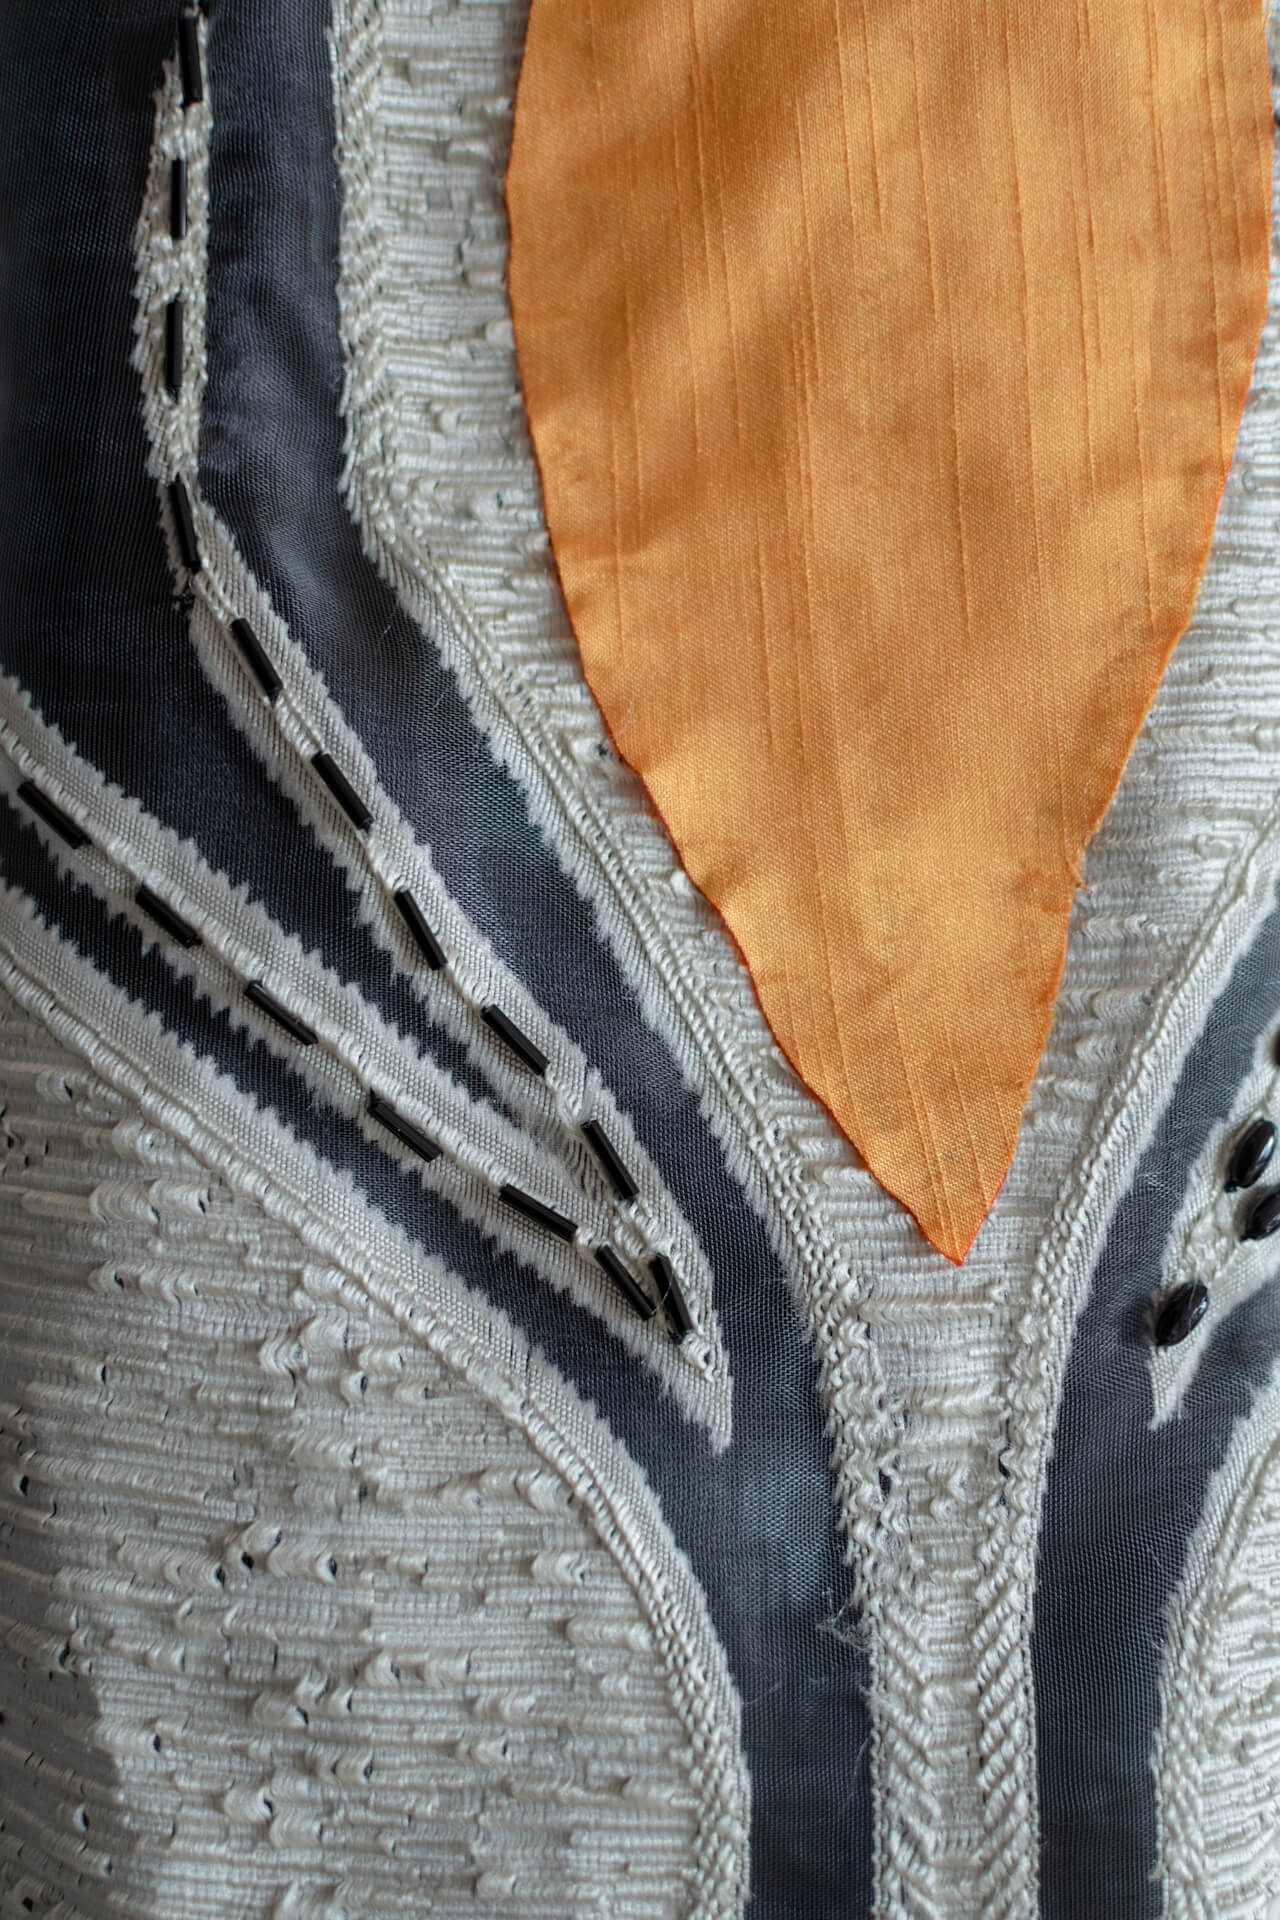 Textile details on a dress in Denuo's collection